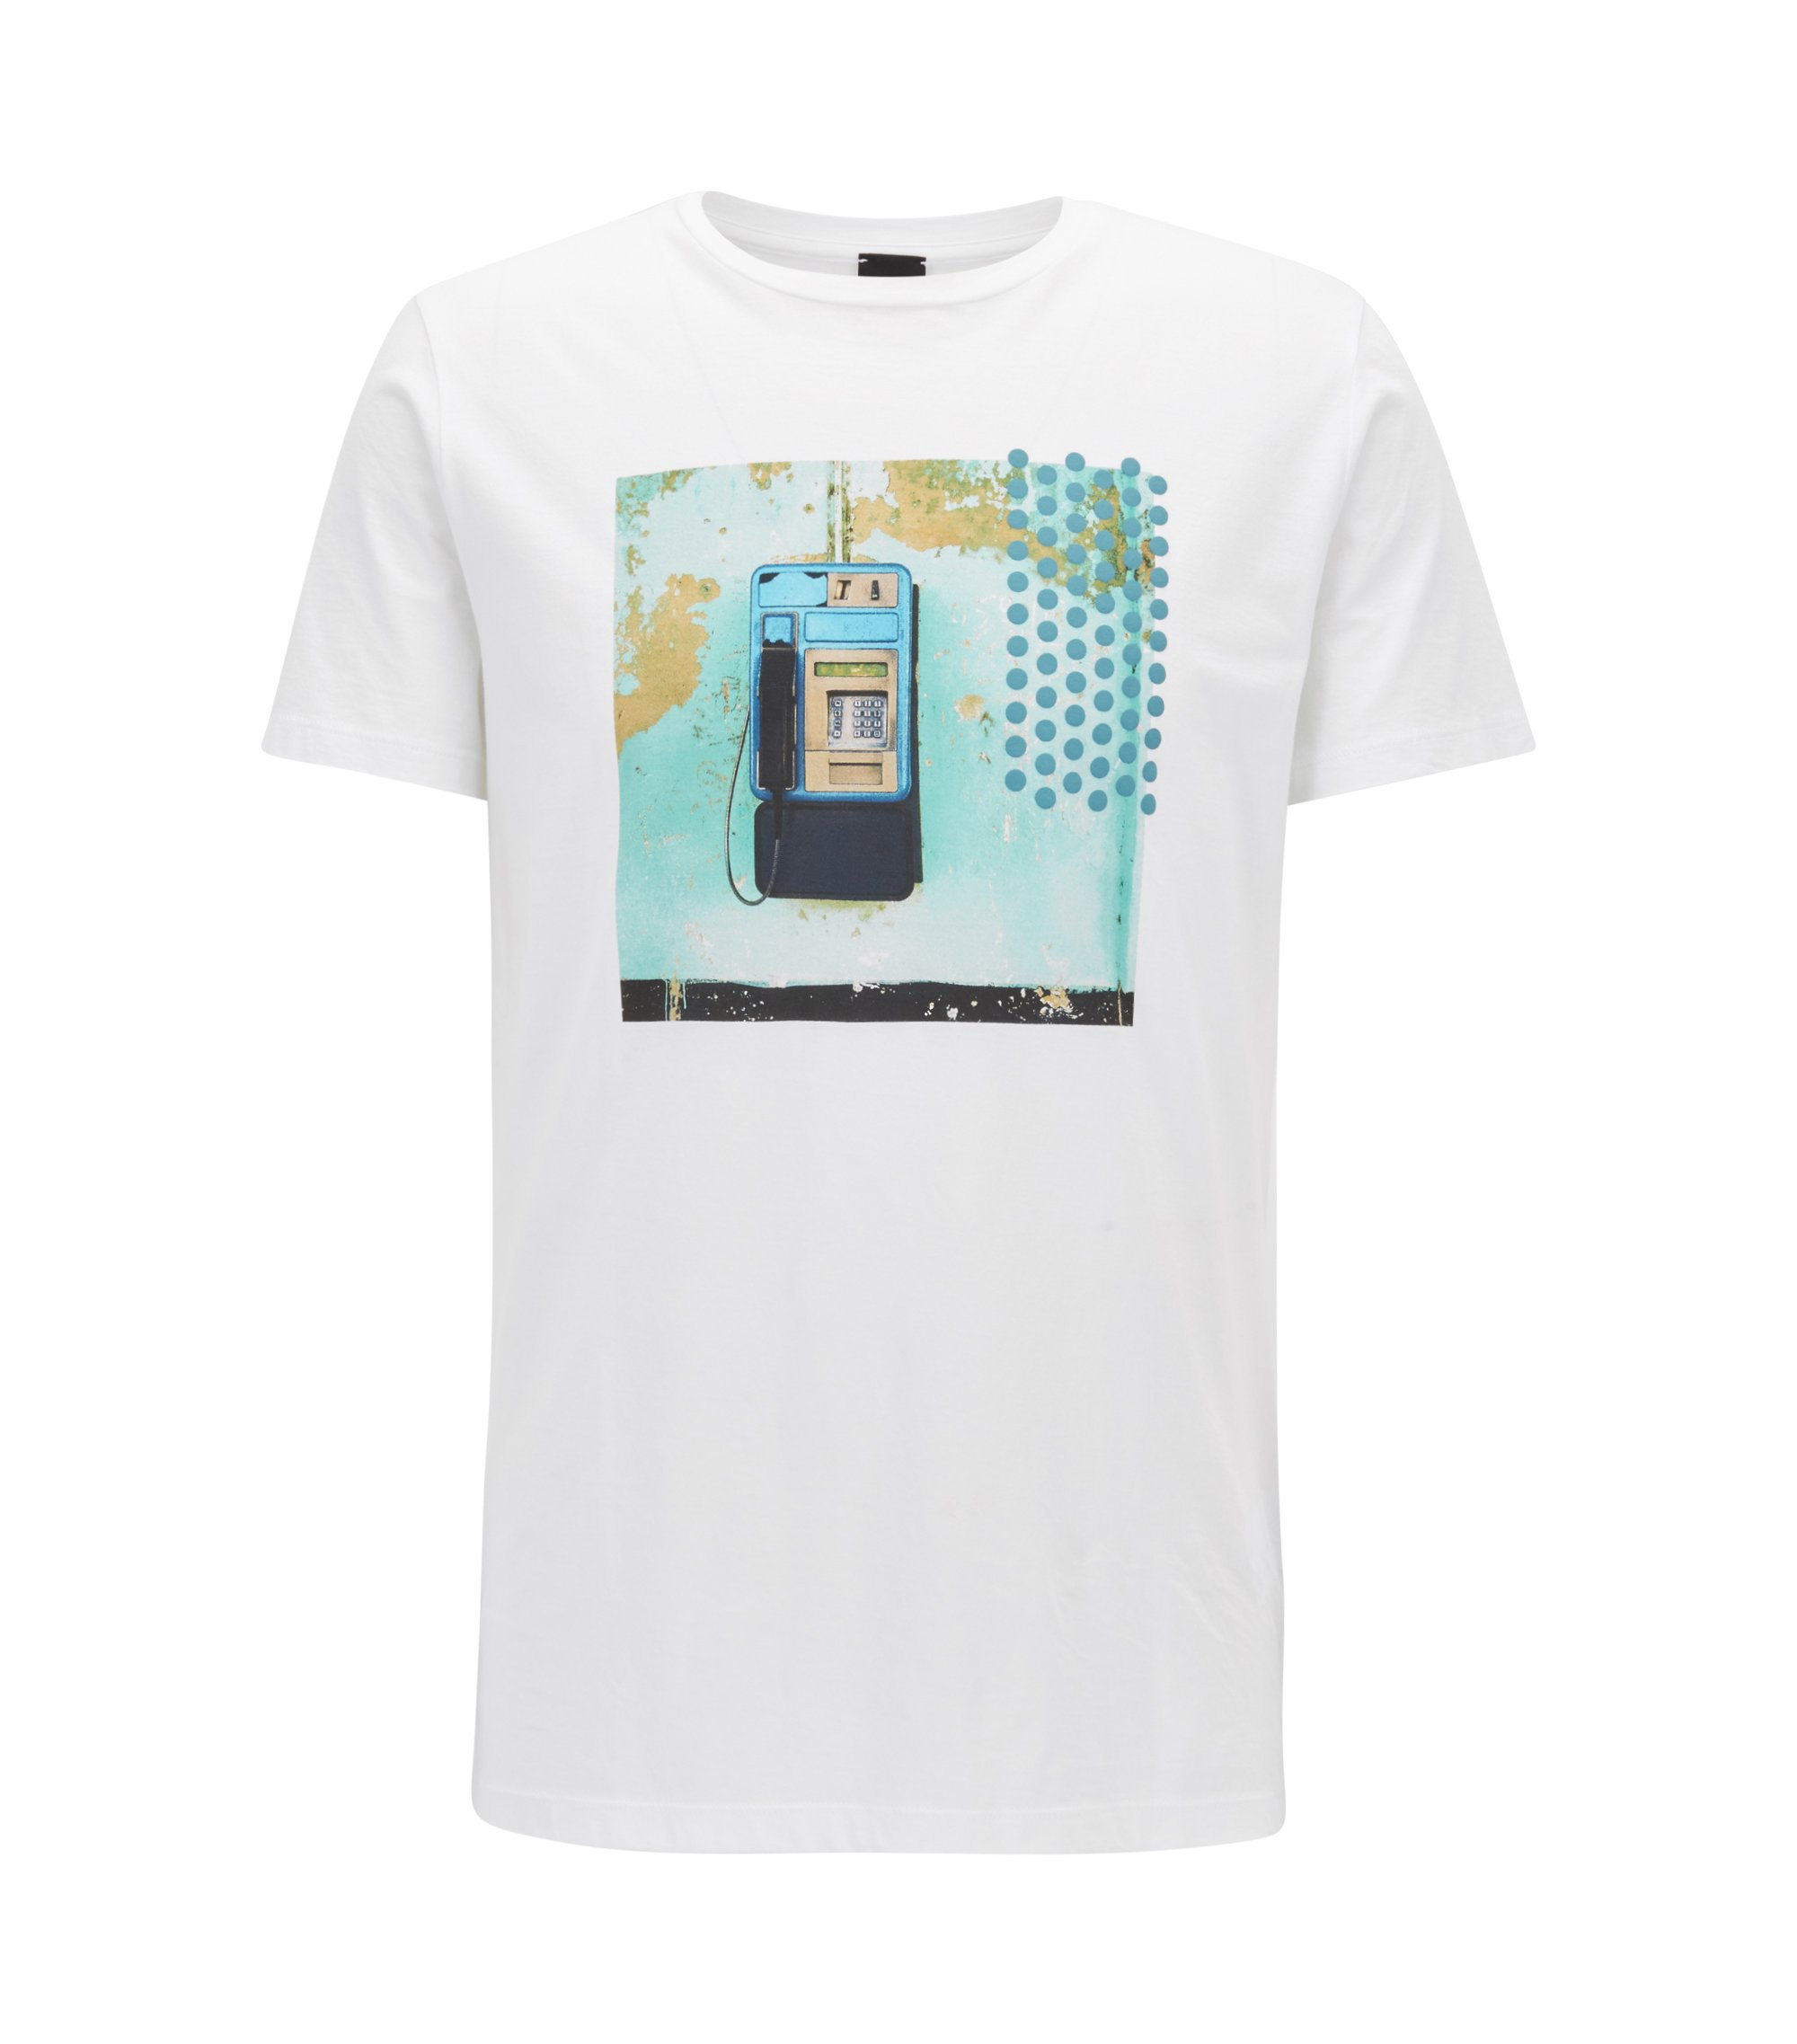 Cotton Graphic T-Shirt | Timen, White